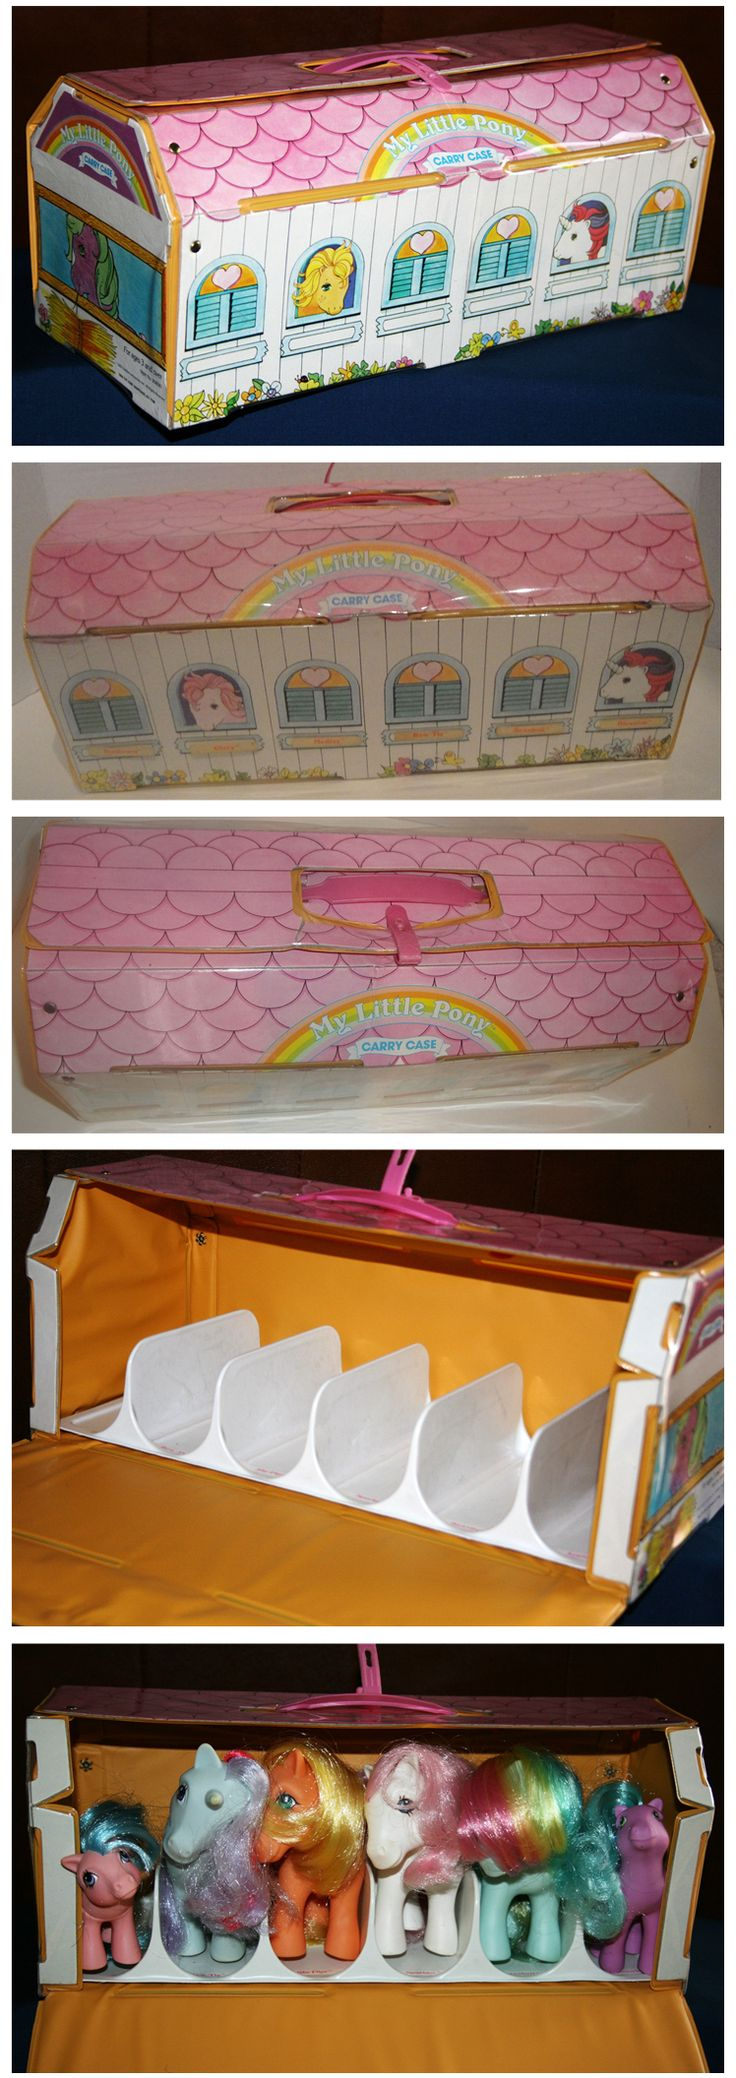 My Little Pony carrier case show stable ...